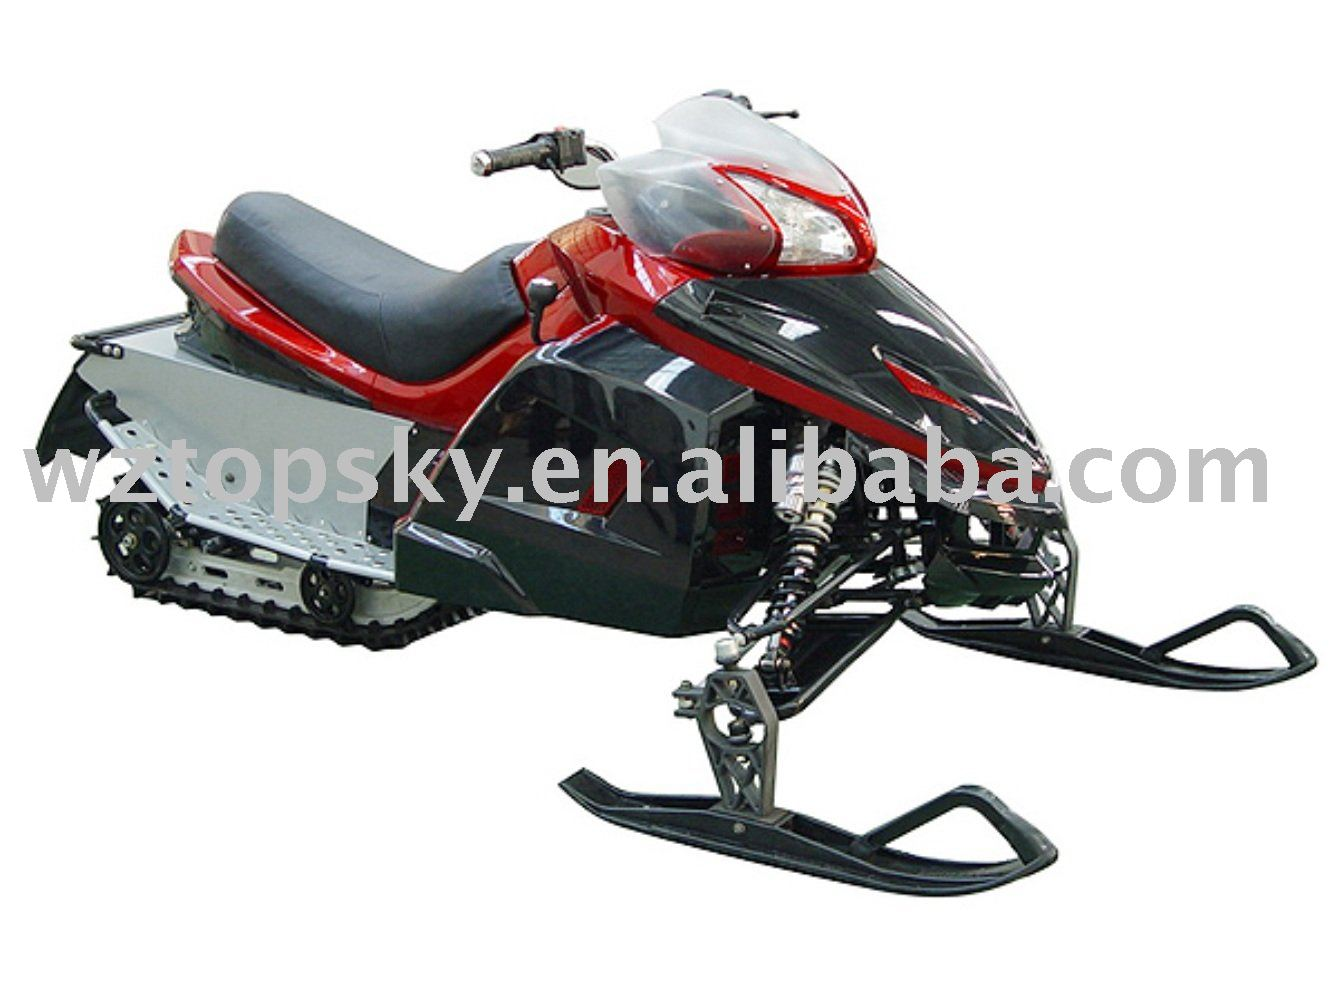 300cc Snow Scooter / Snow Mobile / Snow Motorcycle S300